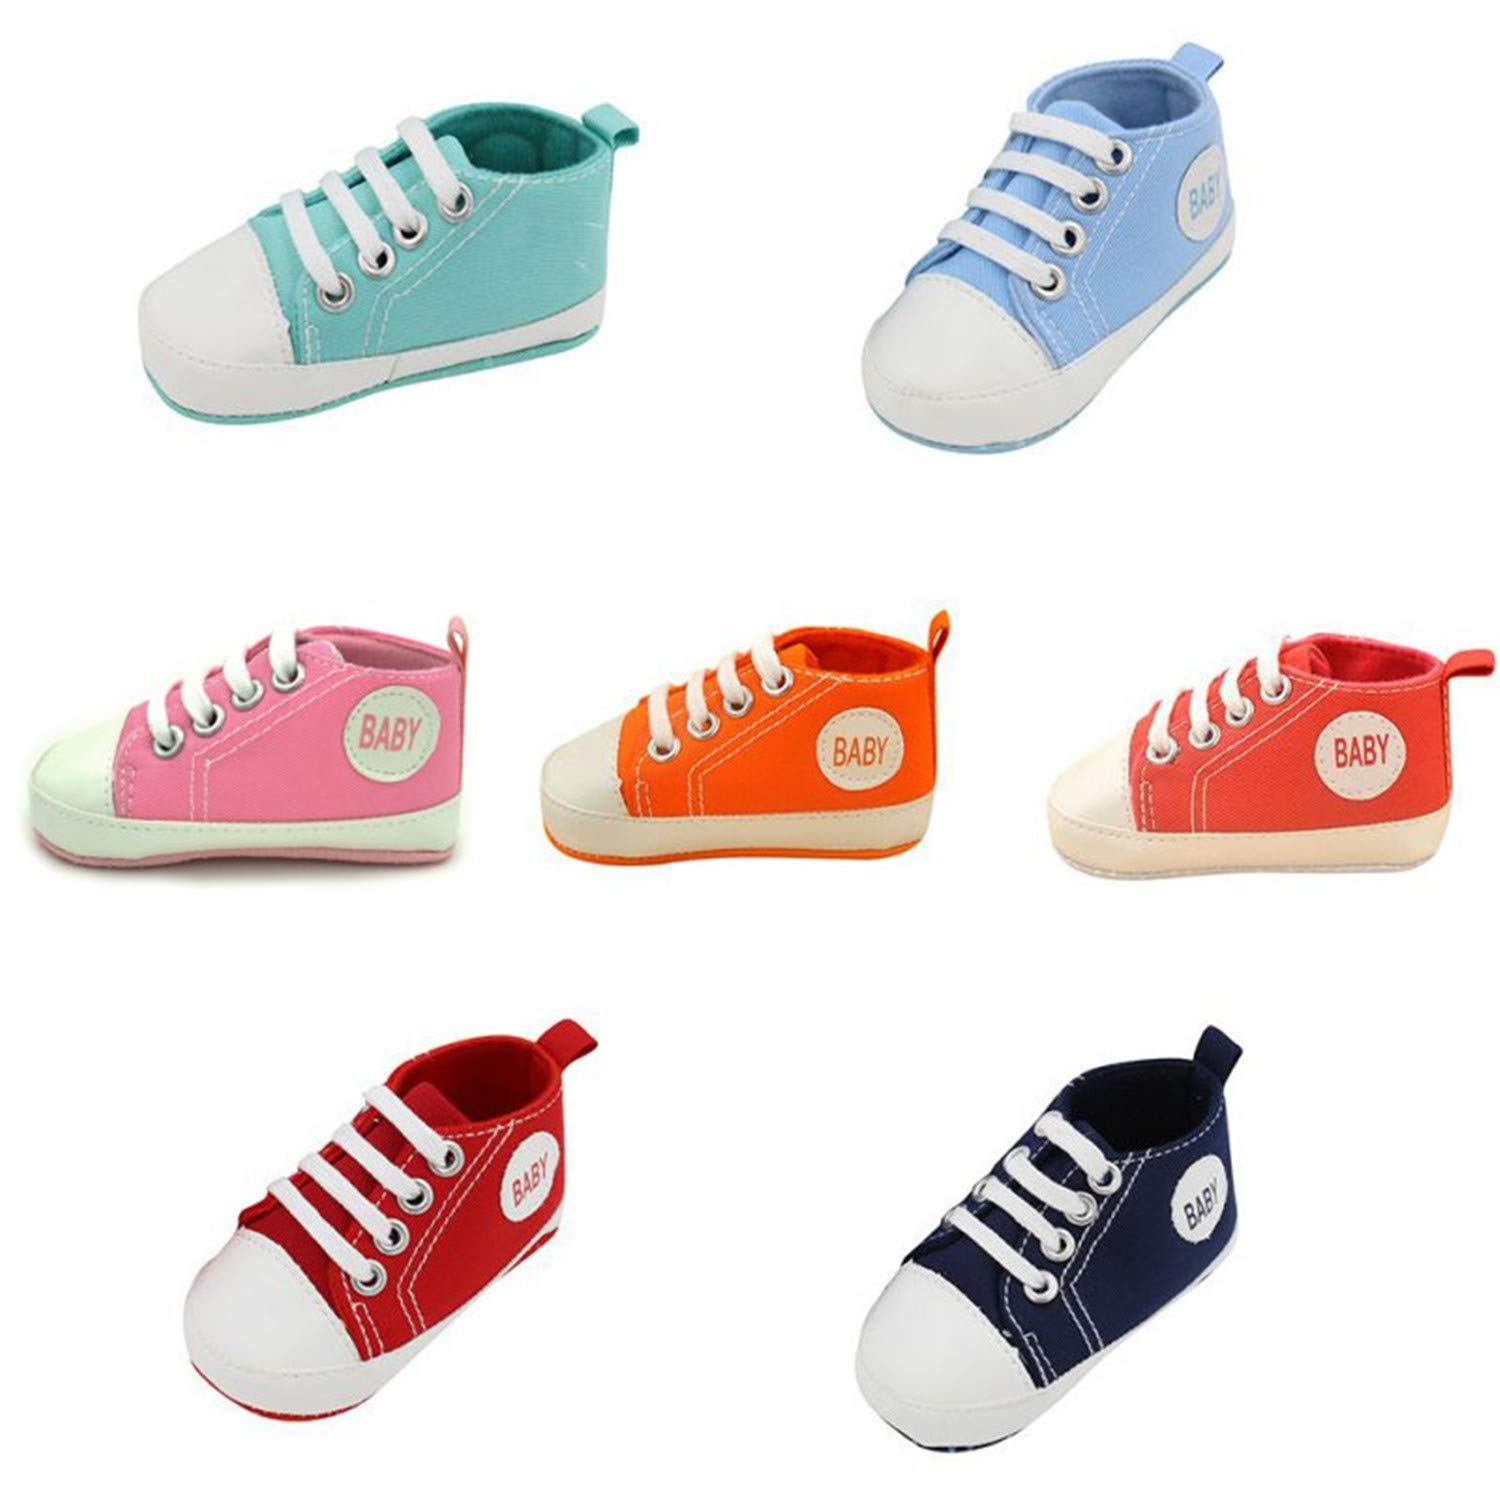 Baby Shoes Infant Unisex Toddler Shoes Baby Boy Girls Soft Sole Crib Shoes Casual Canvas Sneakers